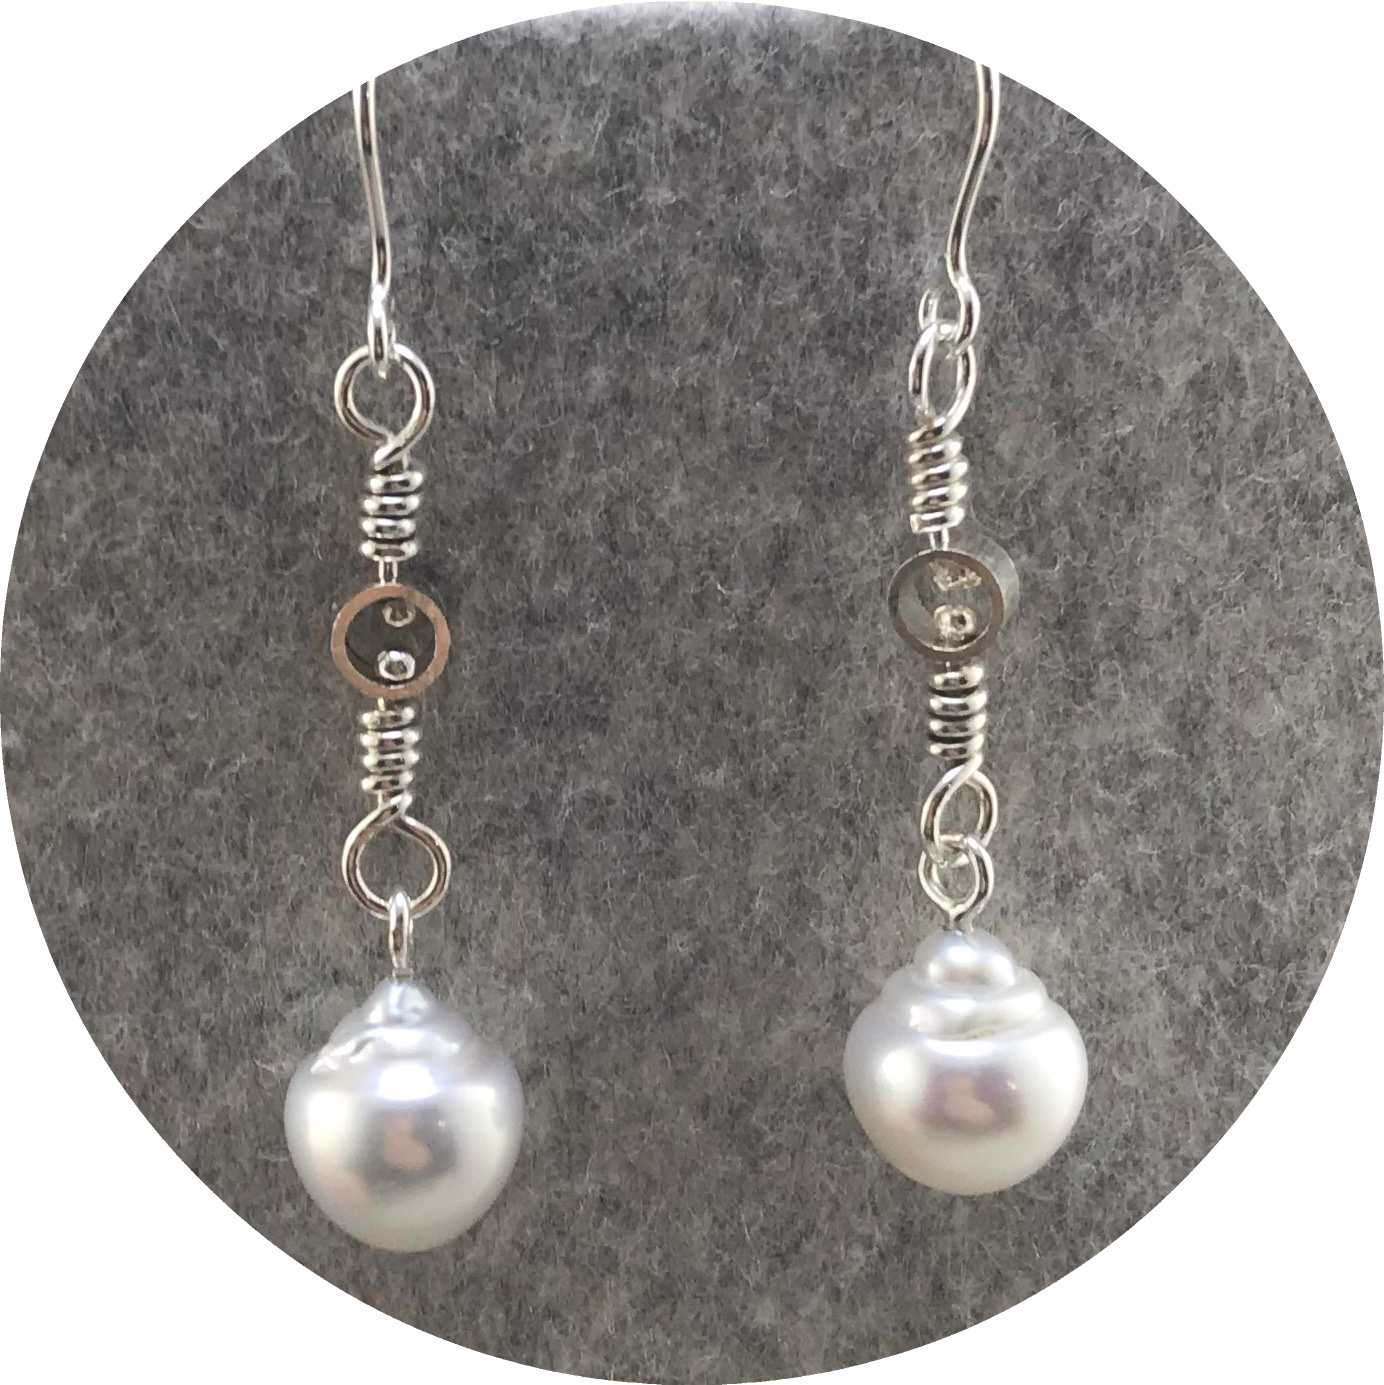 Laura Eyles - 'Swivel Drop Earrings', South Sea Circle Pearls, 925 silver